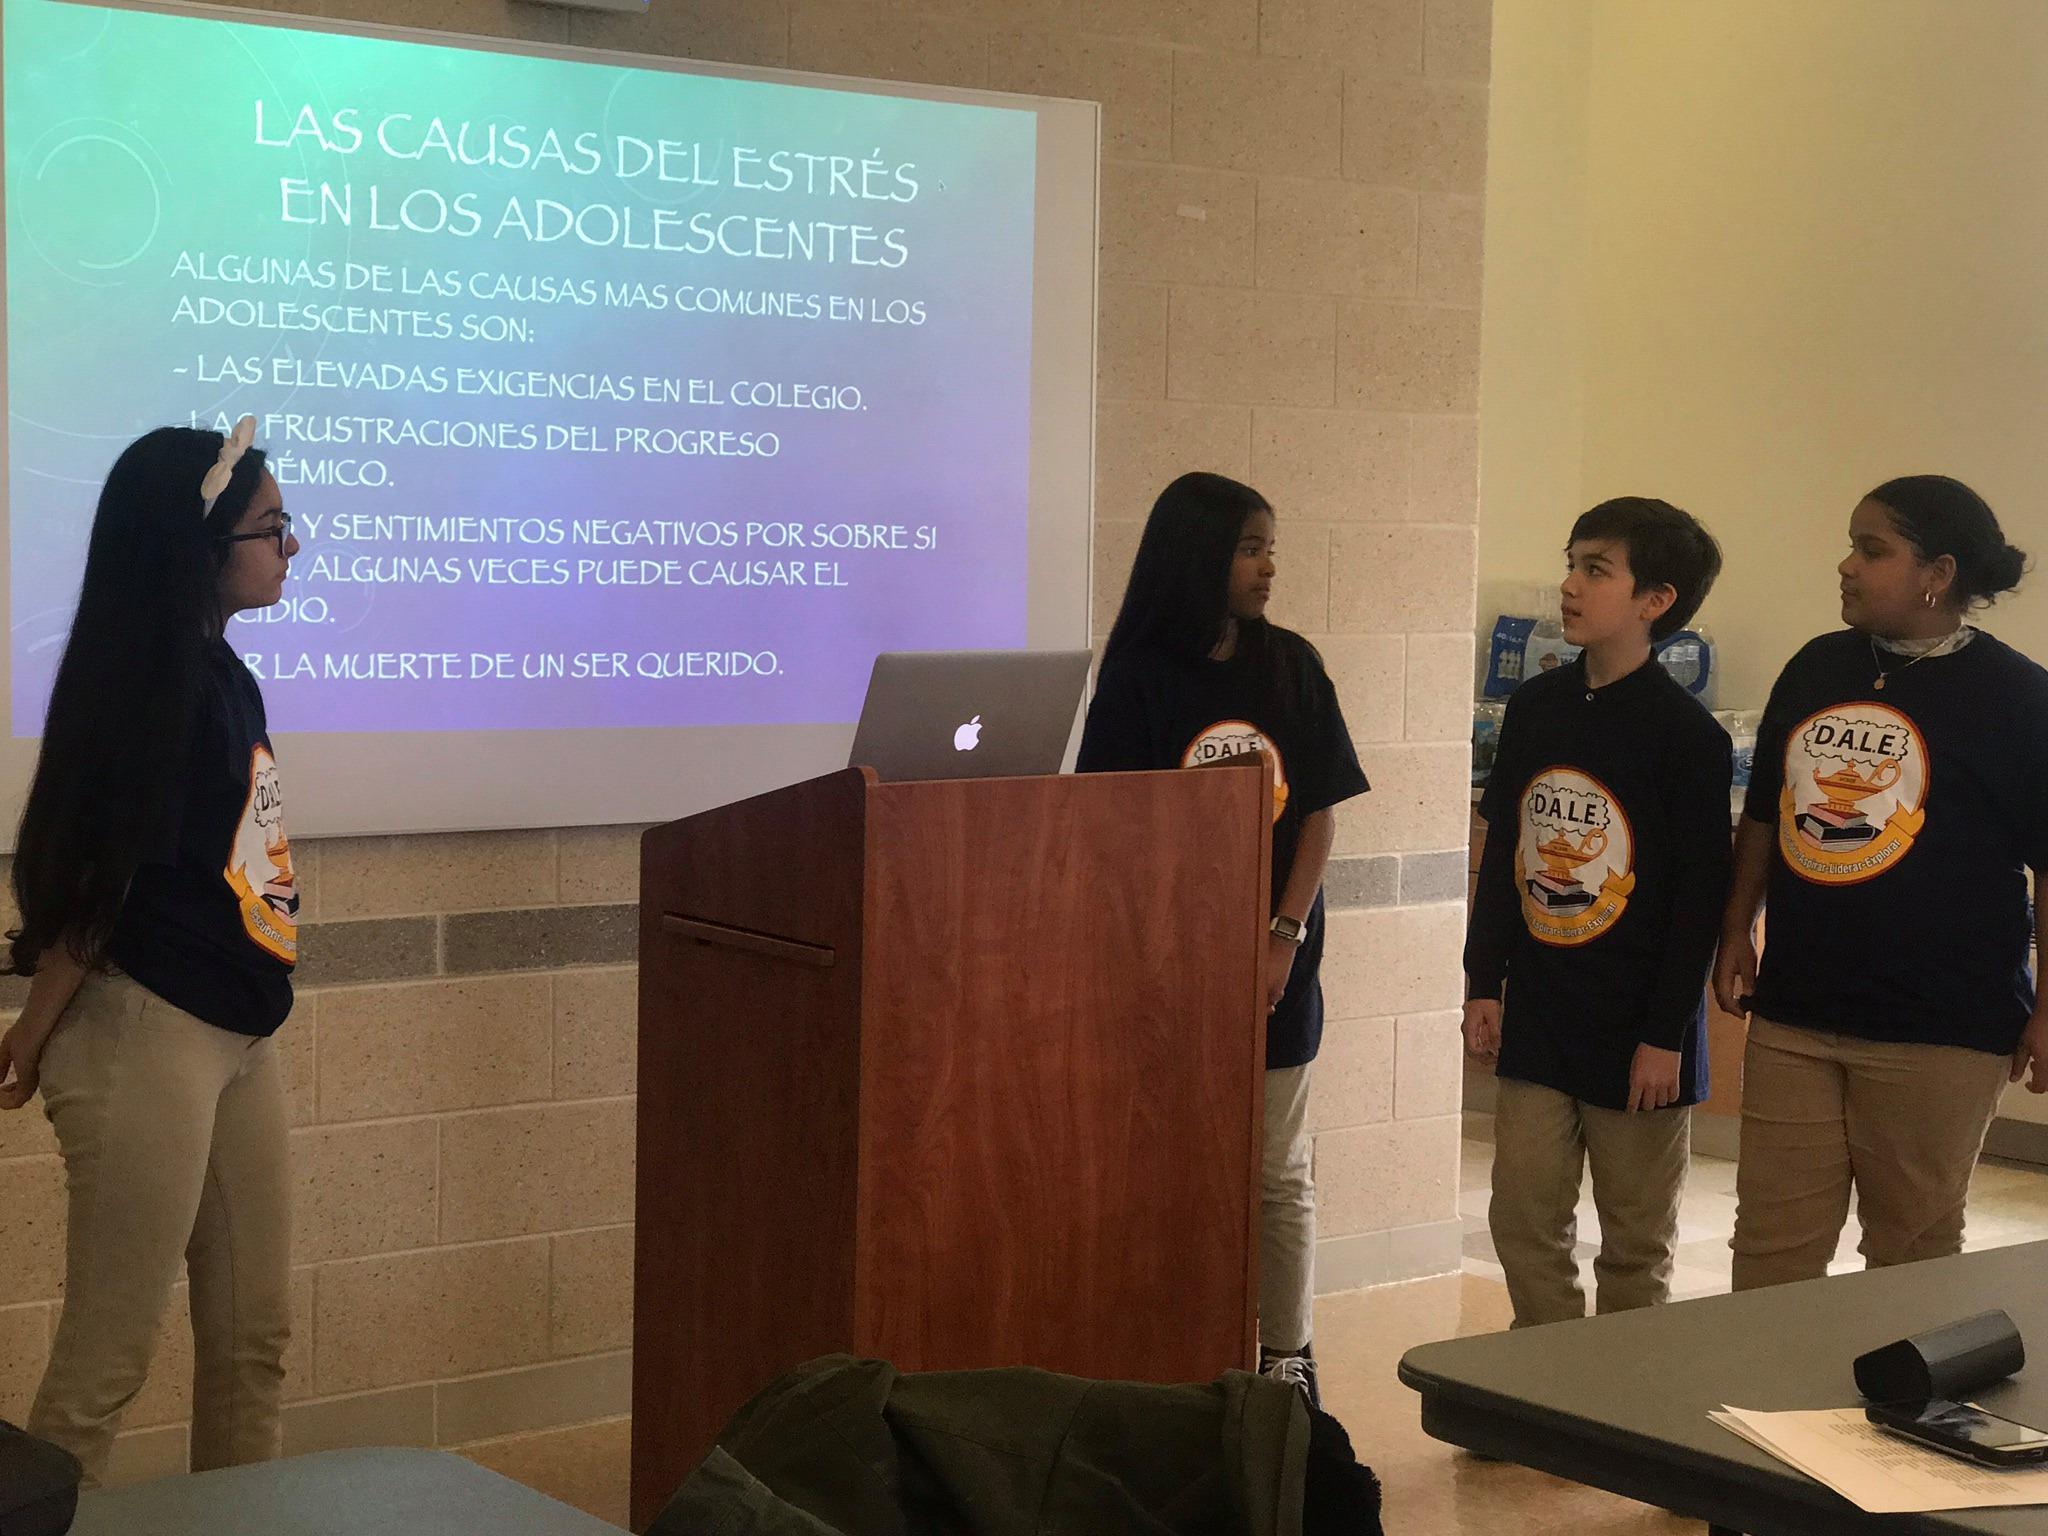 four kids wearing DALE T-shirt presenting a adolescents and stress presentations